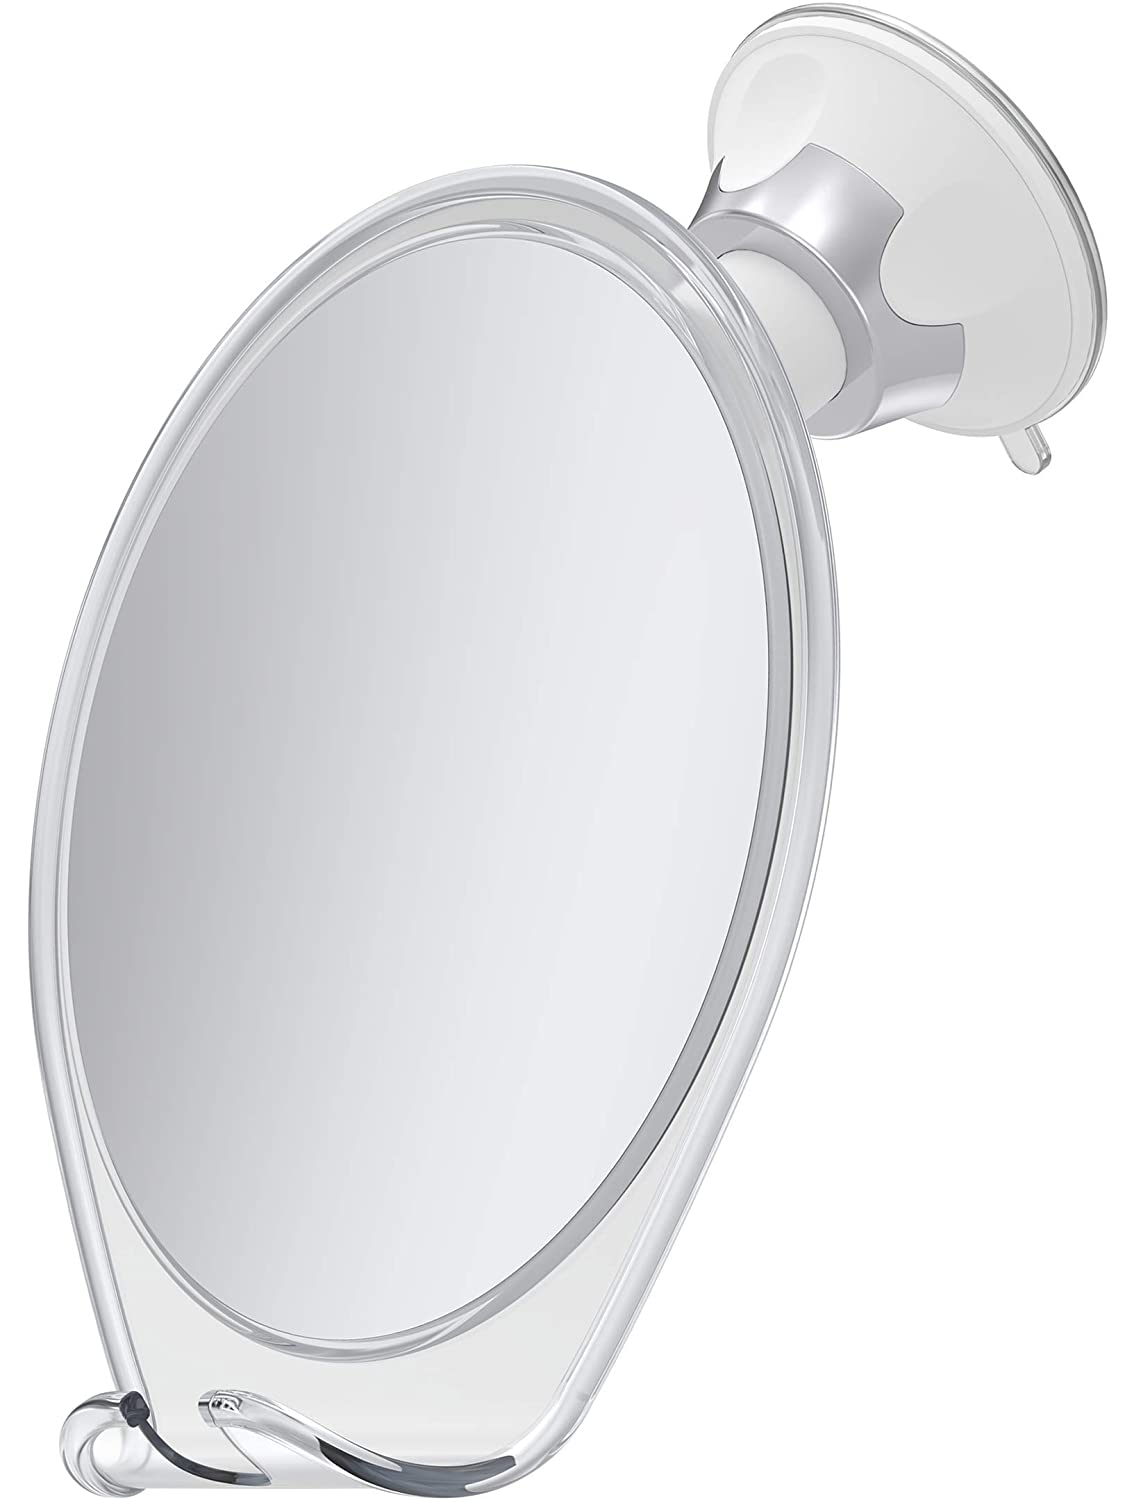 HoneyBull Fogless Shower Mirror for Shaving | Shatterproof with Suction, Swivel & Razor Hook